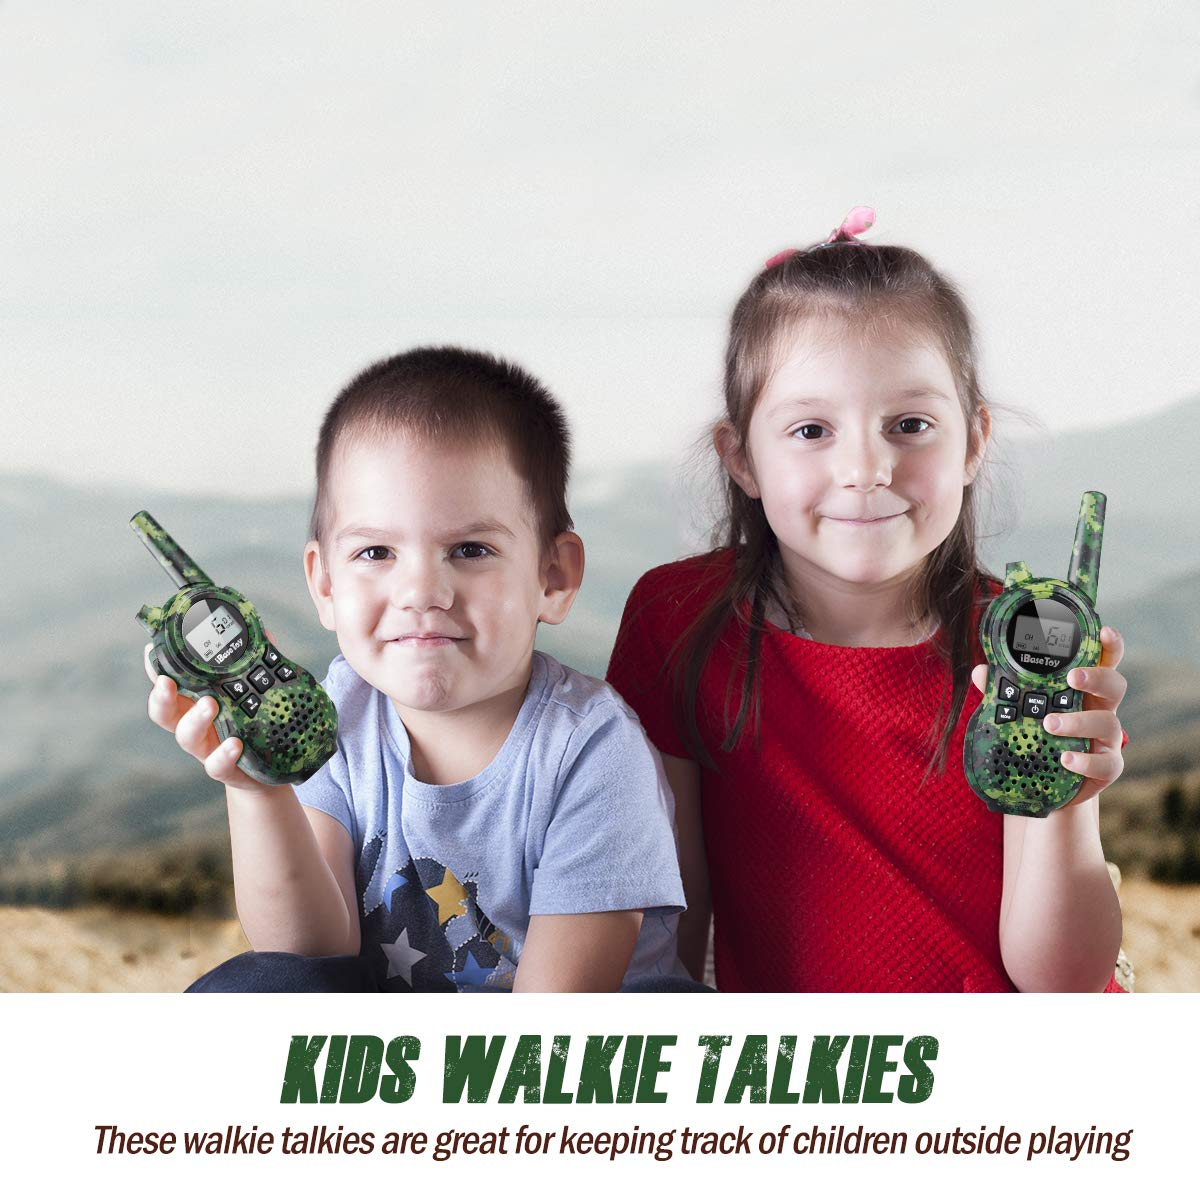 iBaseToy Walkie Talkies for Kids, Rechargeable Walkie Talkies with 22 Channels, 4-Miles Range Radio with Flashlight, LCD Screen and Charging line for Outdoor Adventures, Camping, Hiking - 2 Pack by iBaseToy (Image #8)